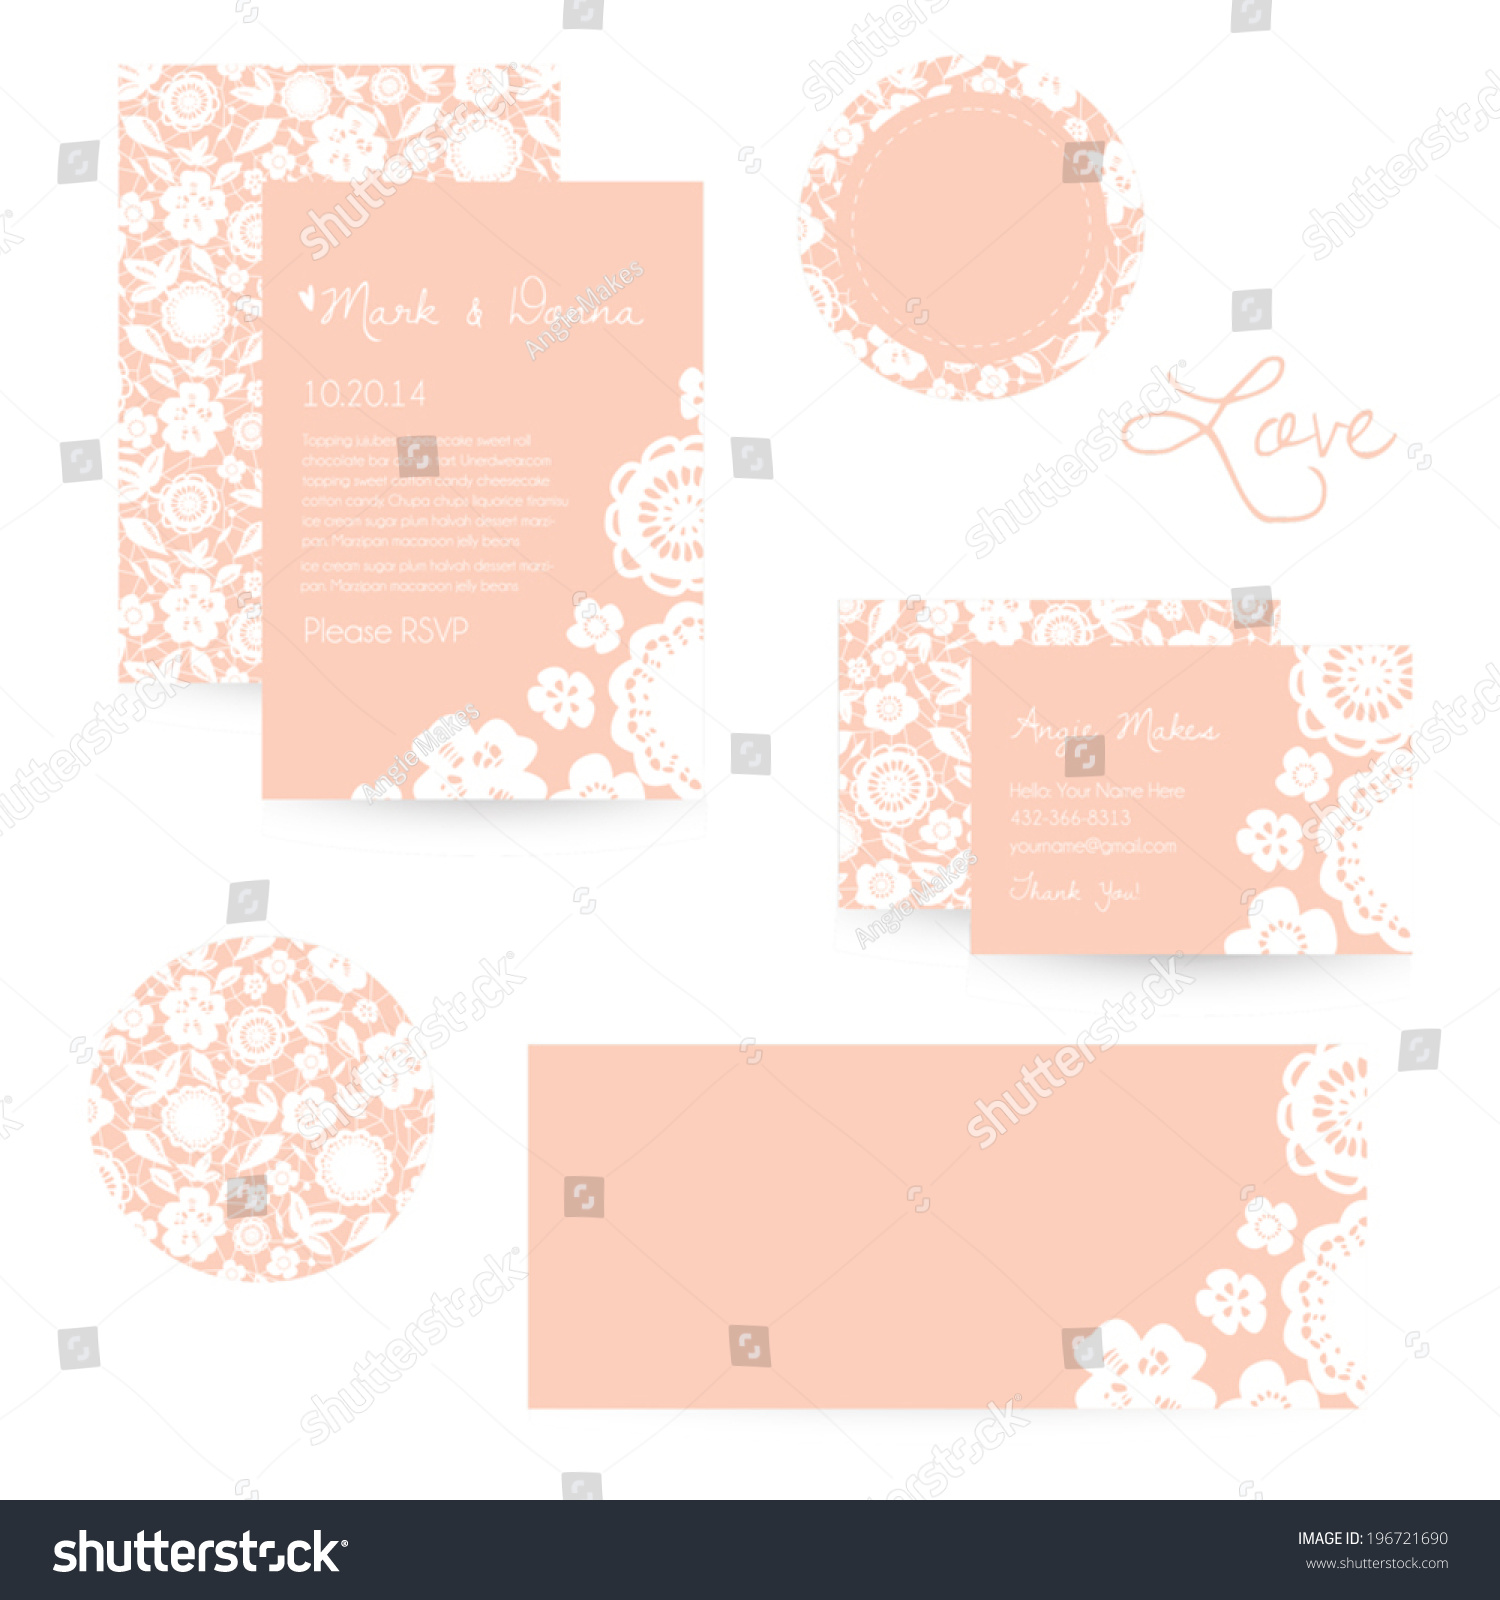 Wedding stationery set lace wedding invitation stock vector wedding stationery set lace wedding invitation cute lace business card vector sticker template magicingreecefo Choice Image